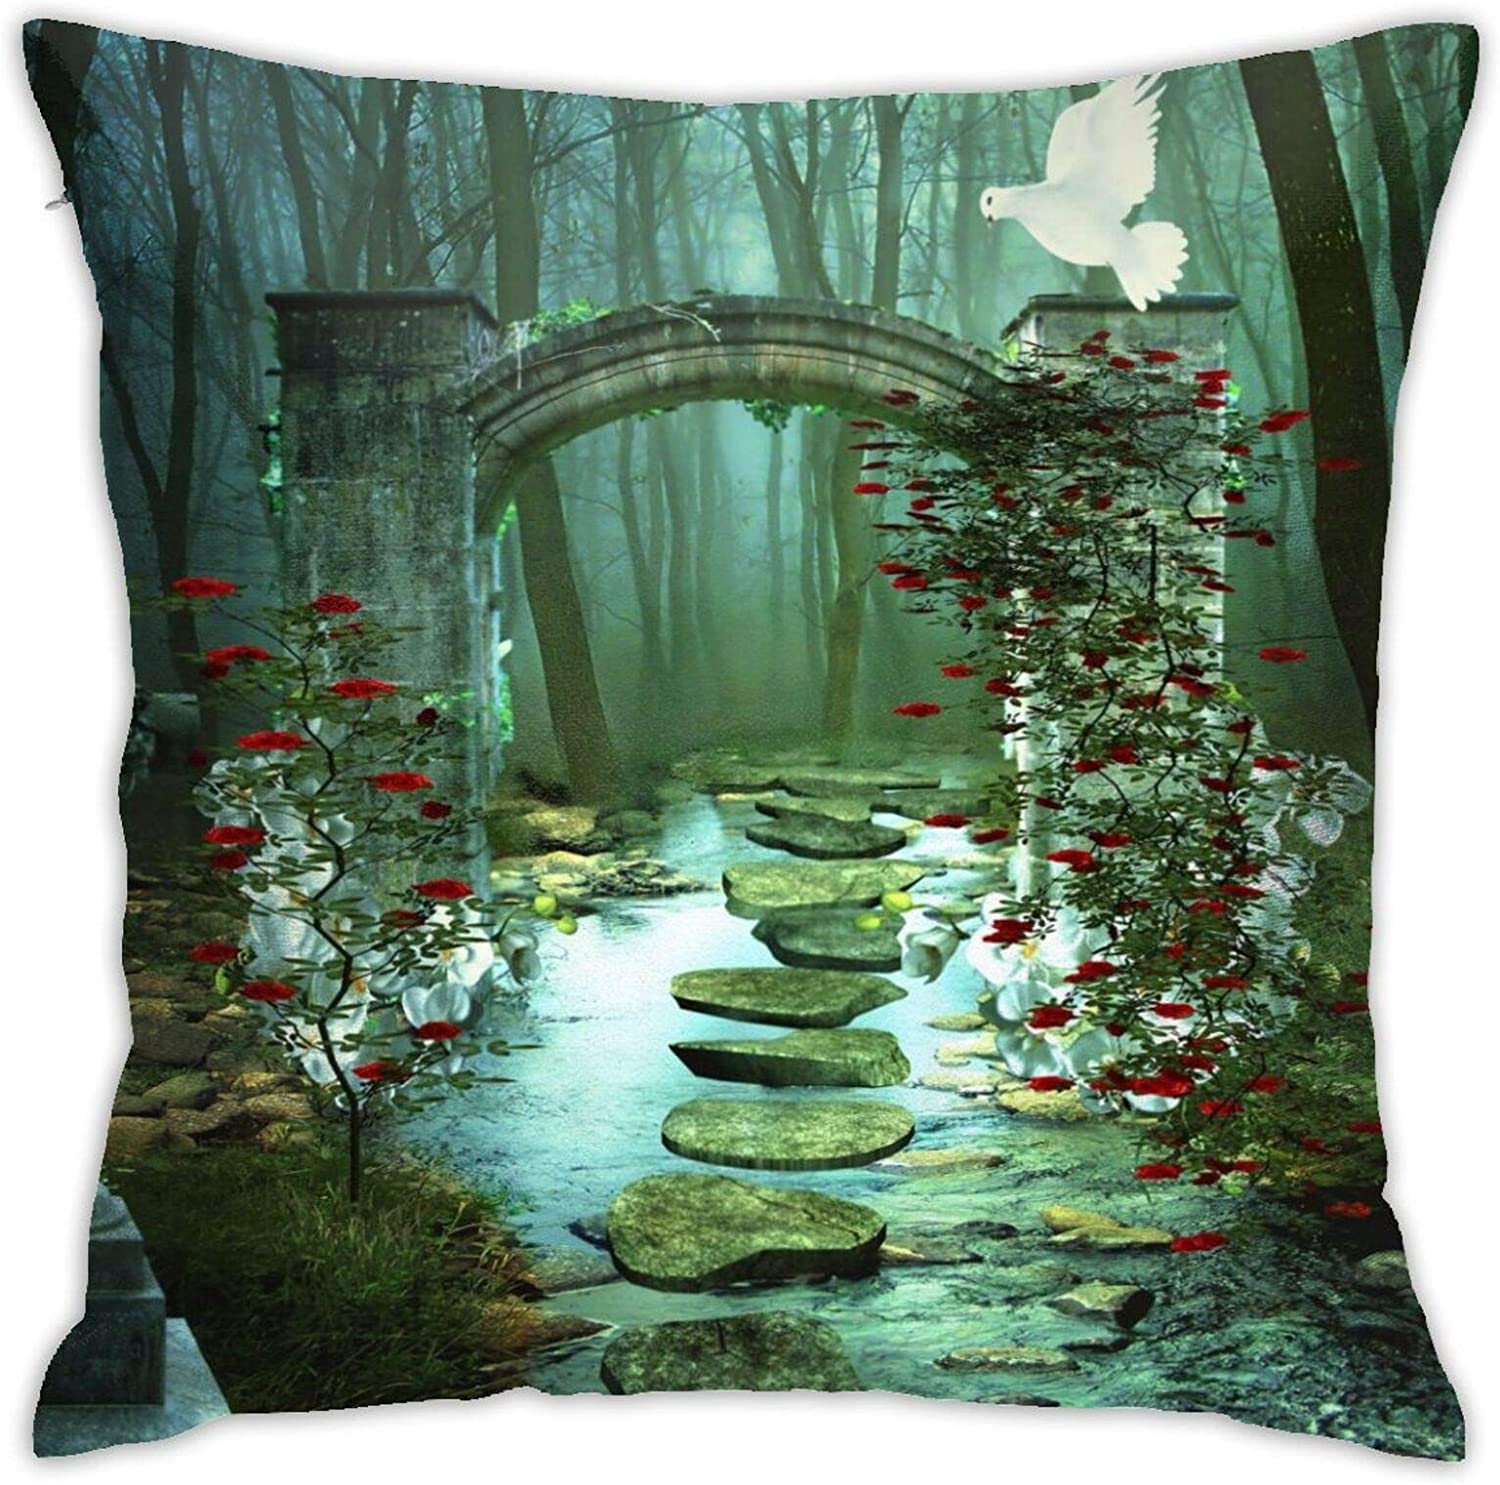 Anime Flax Throw Pillowcase Arch Artistic Columns Dove Forest Magical Red Flower Rose Stone 3210 18x18 Inches Exquisite with Invisible Zipper Pillowcase Home Decor